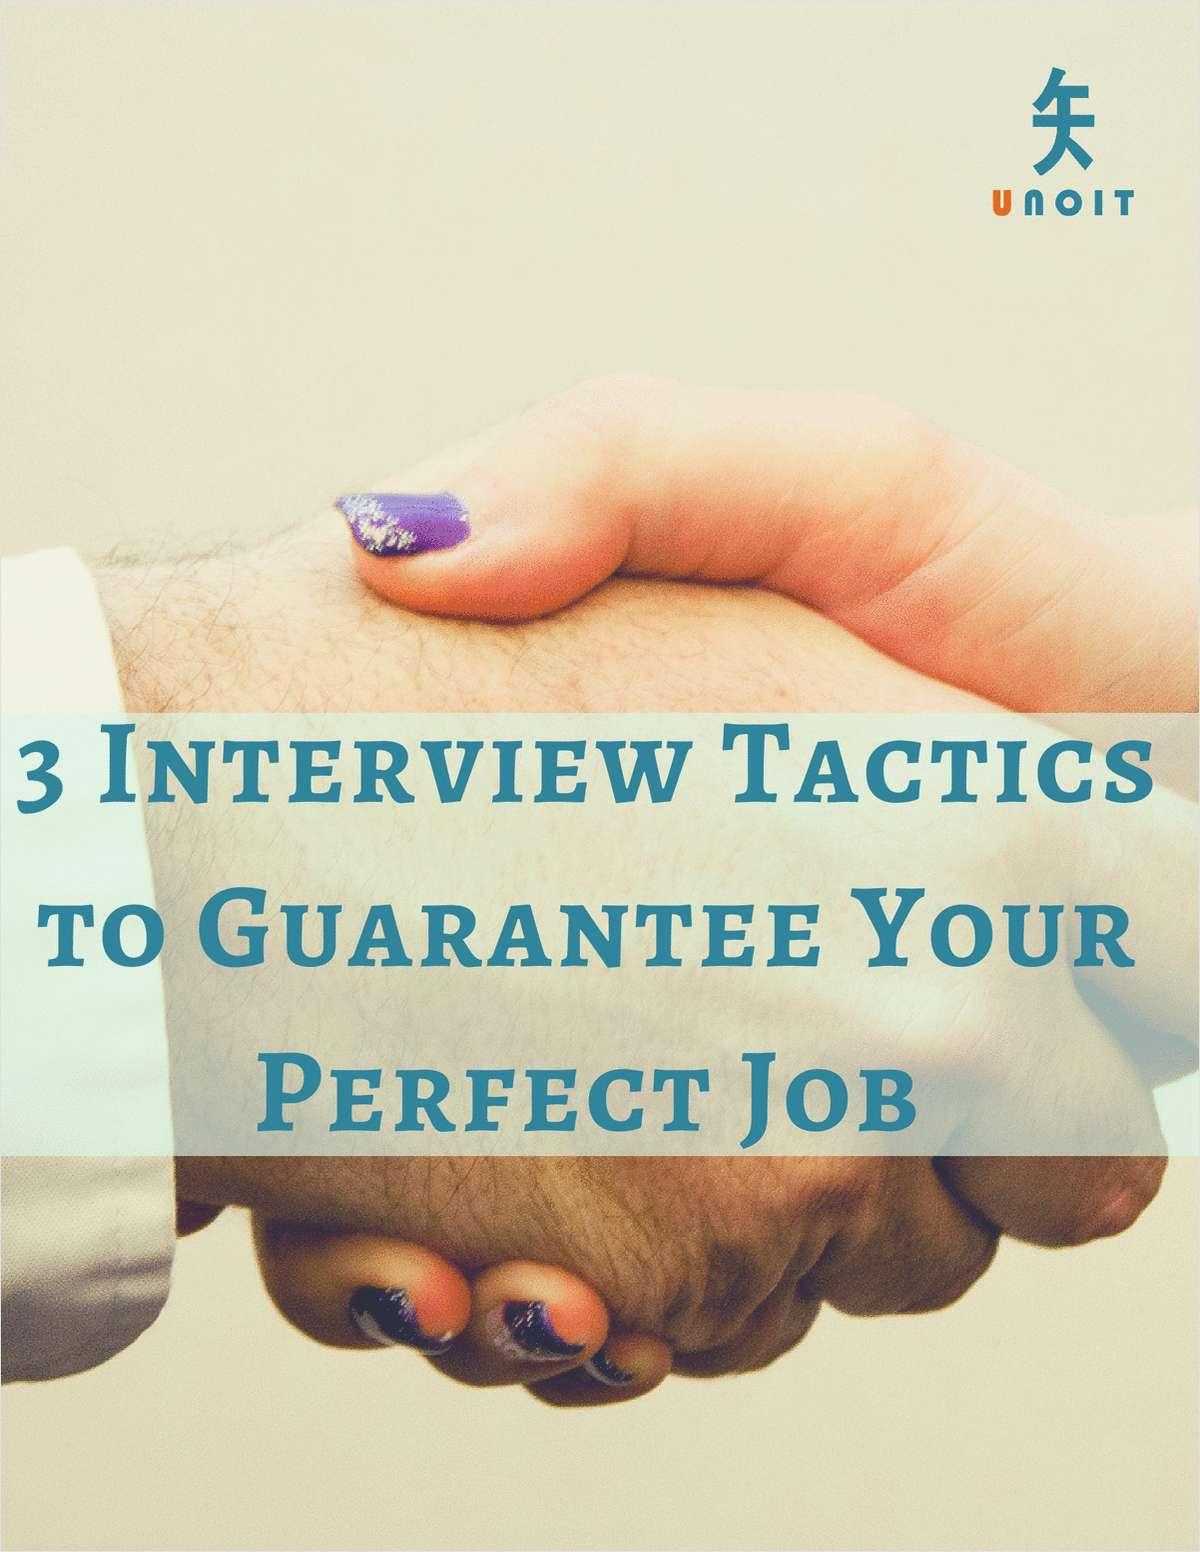 3 Interview Tactics to Guarantee Your Perfect Job